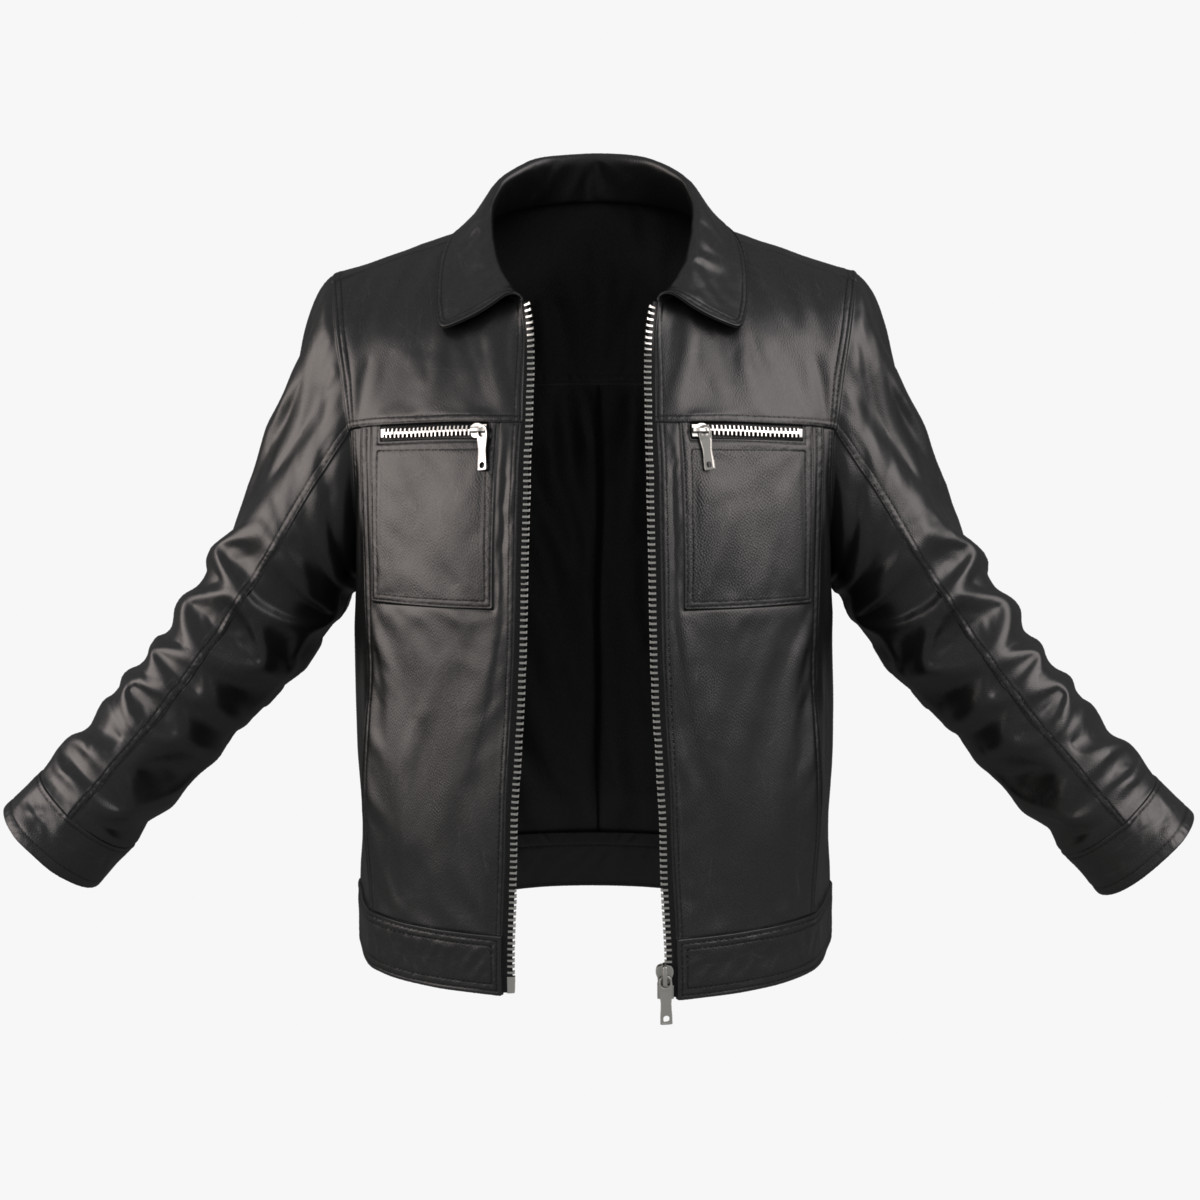 Male_jacket_primary_c.bmp